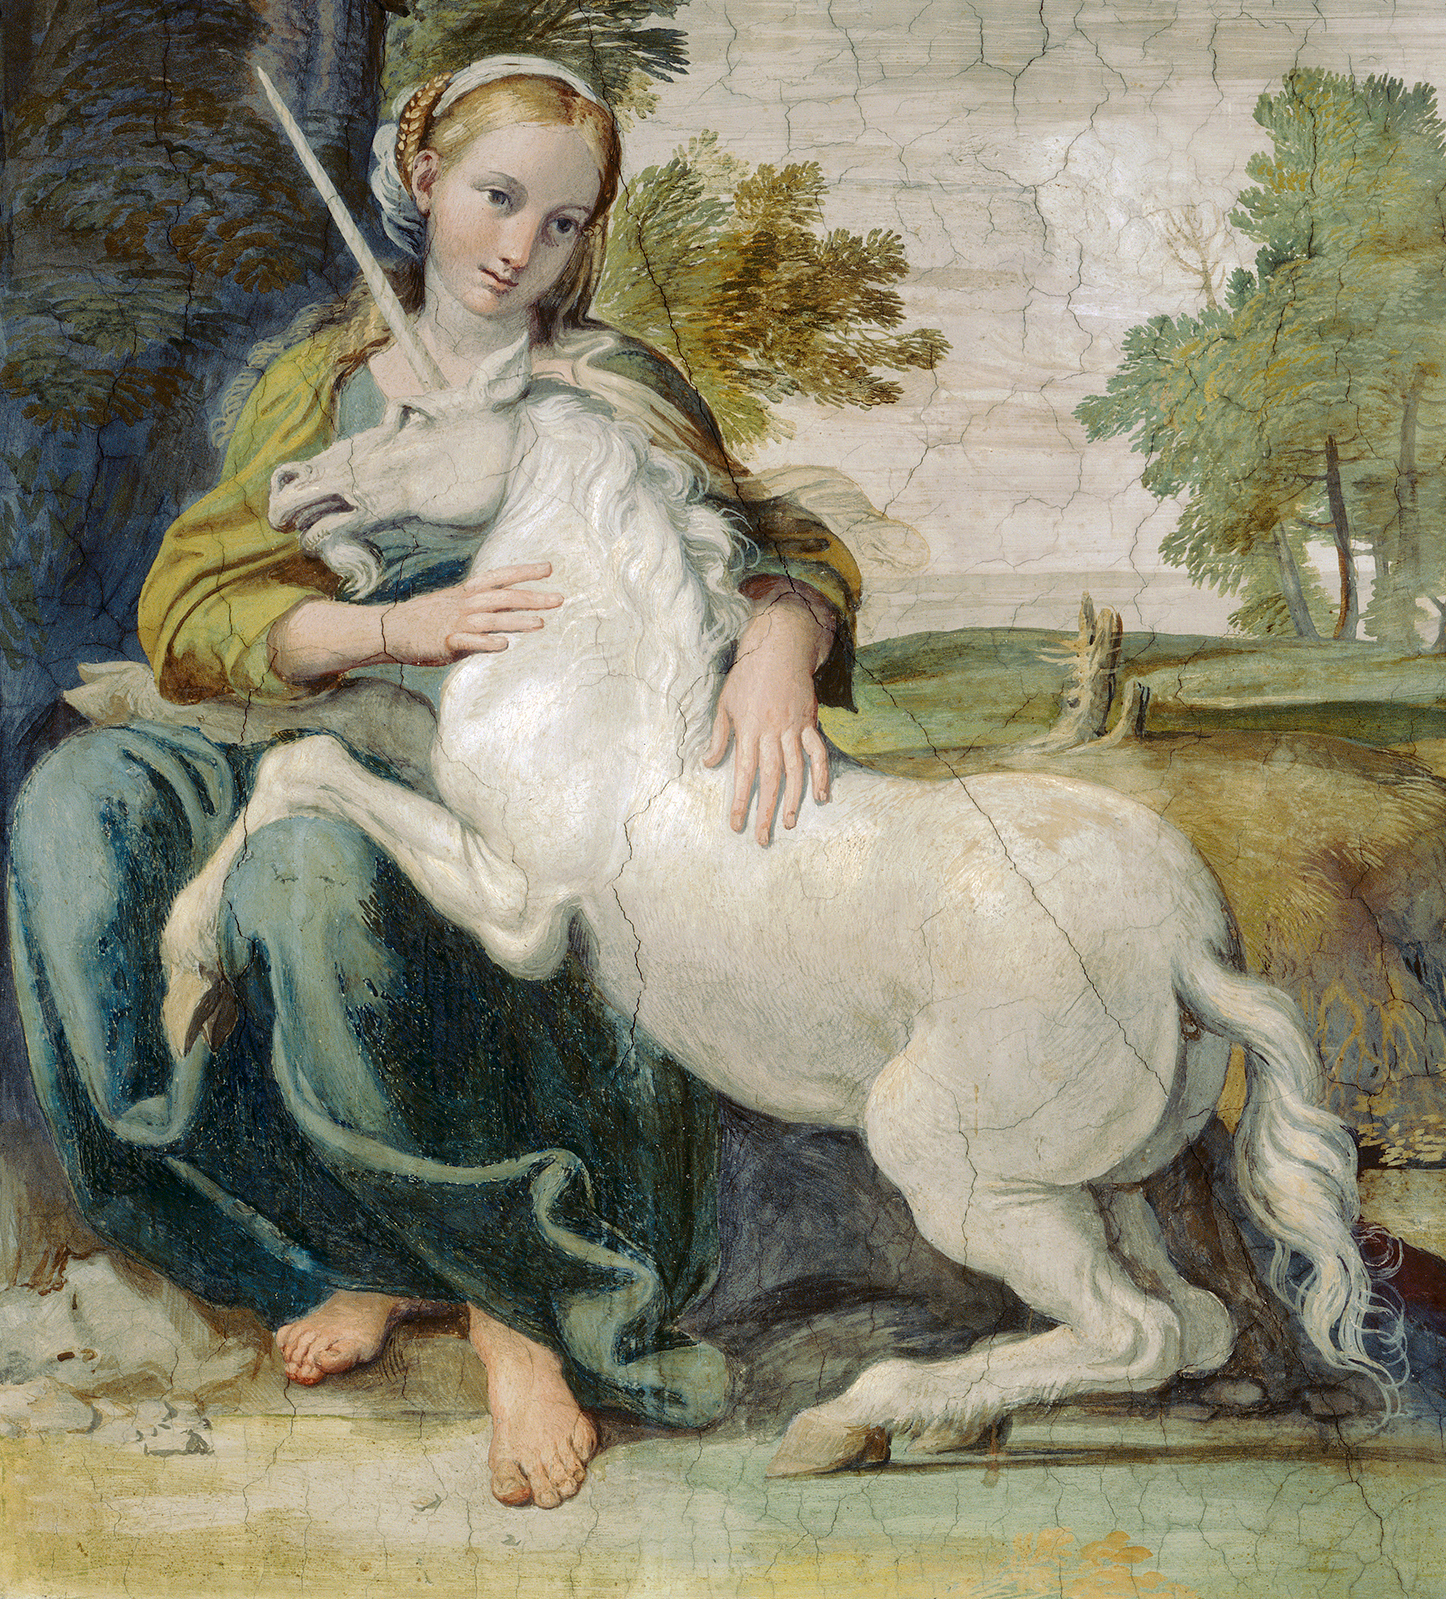 http://upload.wikimedia.org/wikipedia/commons/e/ee/Domenichounicorndetail.jpg